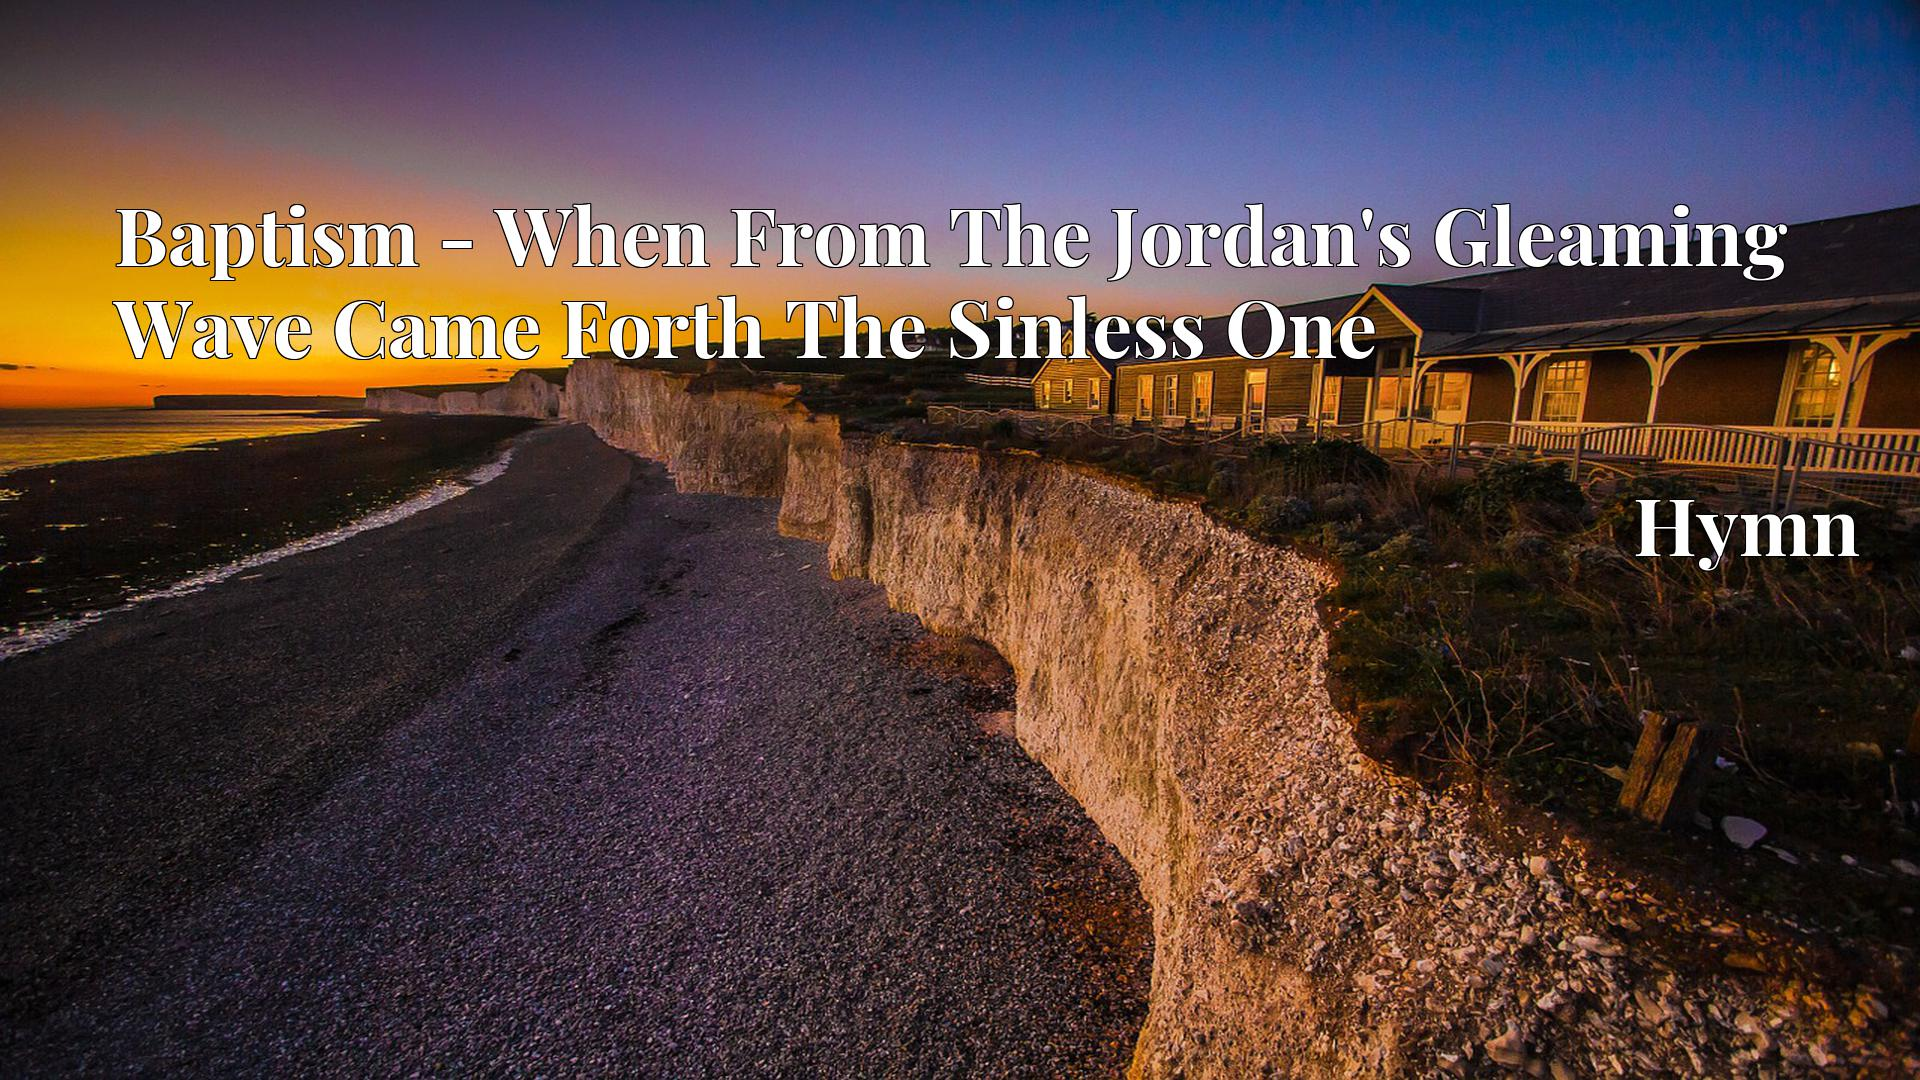 Baptism - When From The Jordan's Gleaming Wave Came Forth The Sinless One - Hymn